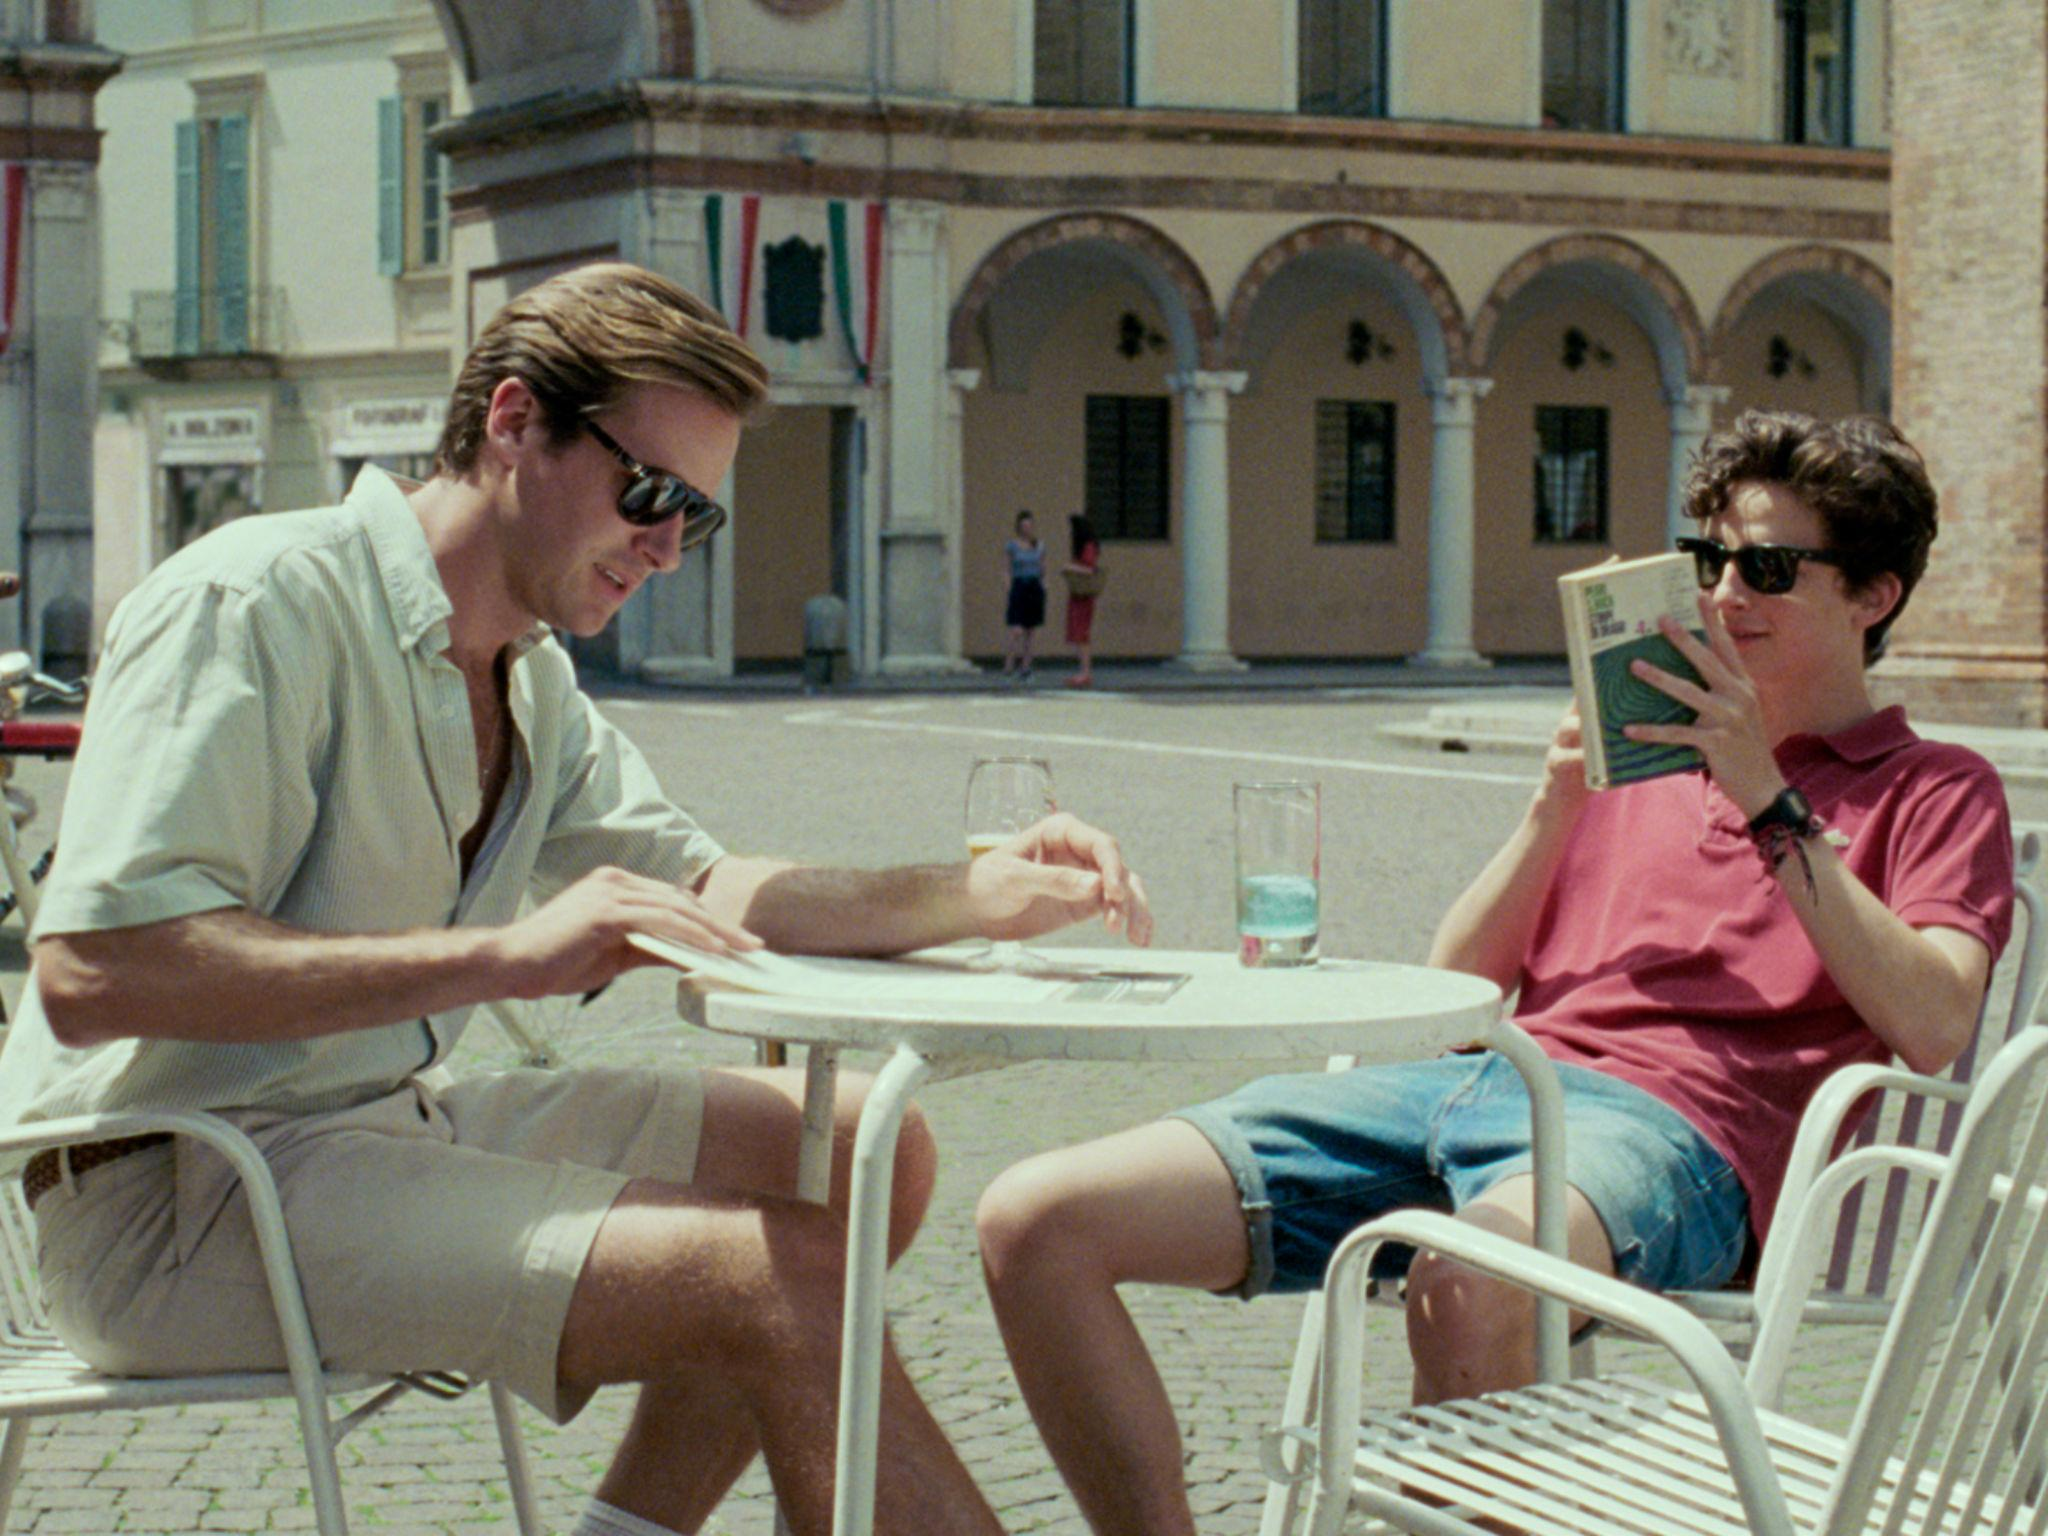 Call Me by Your Name, Sony Pictures Classics